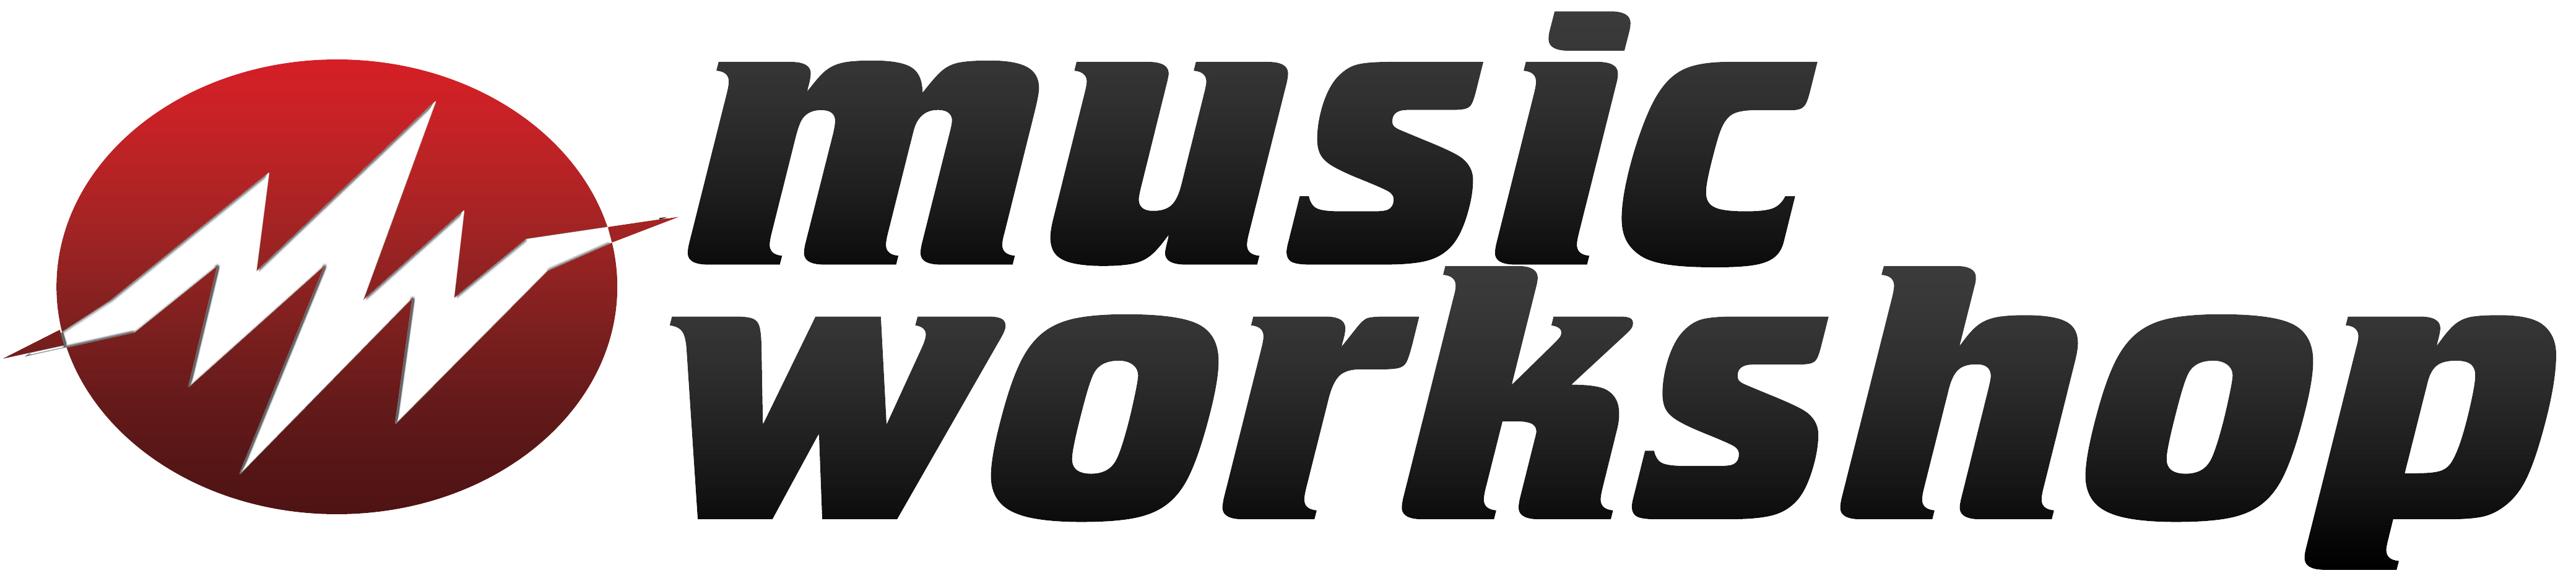 Music_Workshop_logo_main